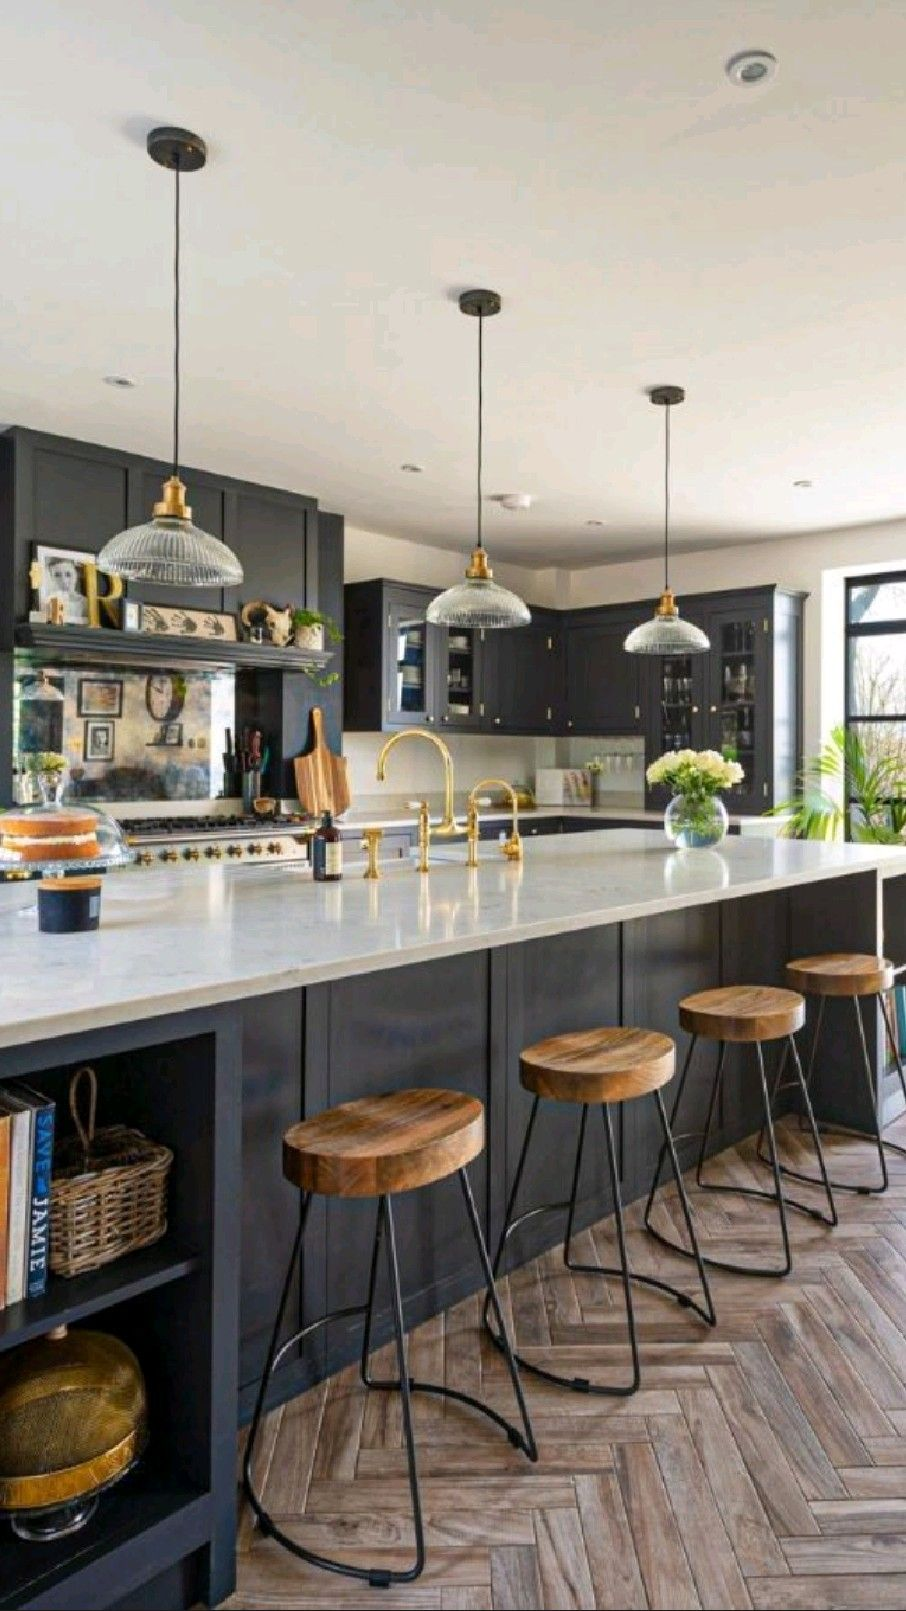 Mini tour of kitchen and breakfast nook